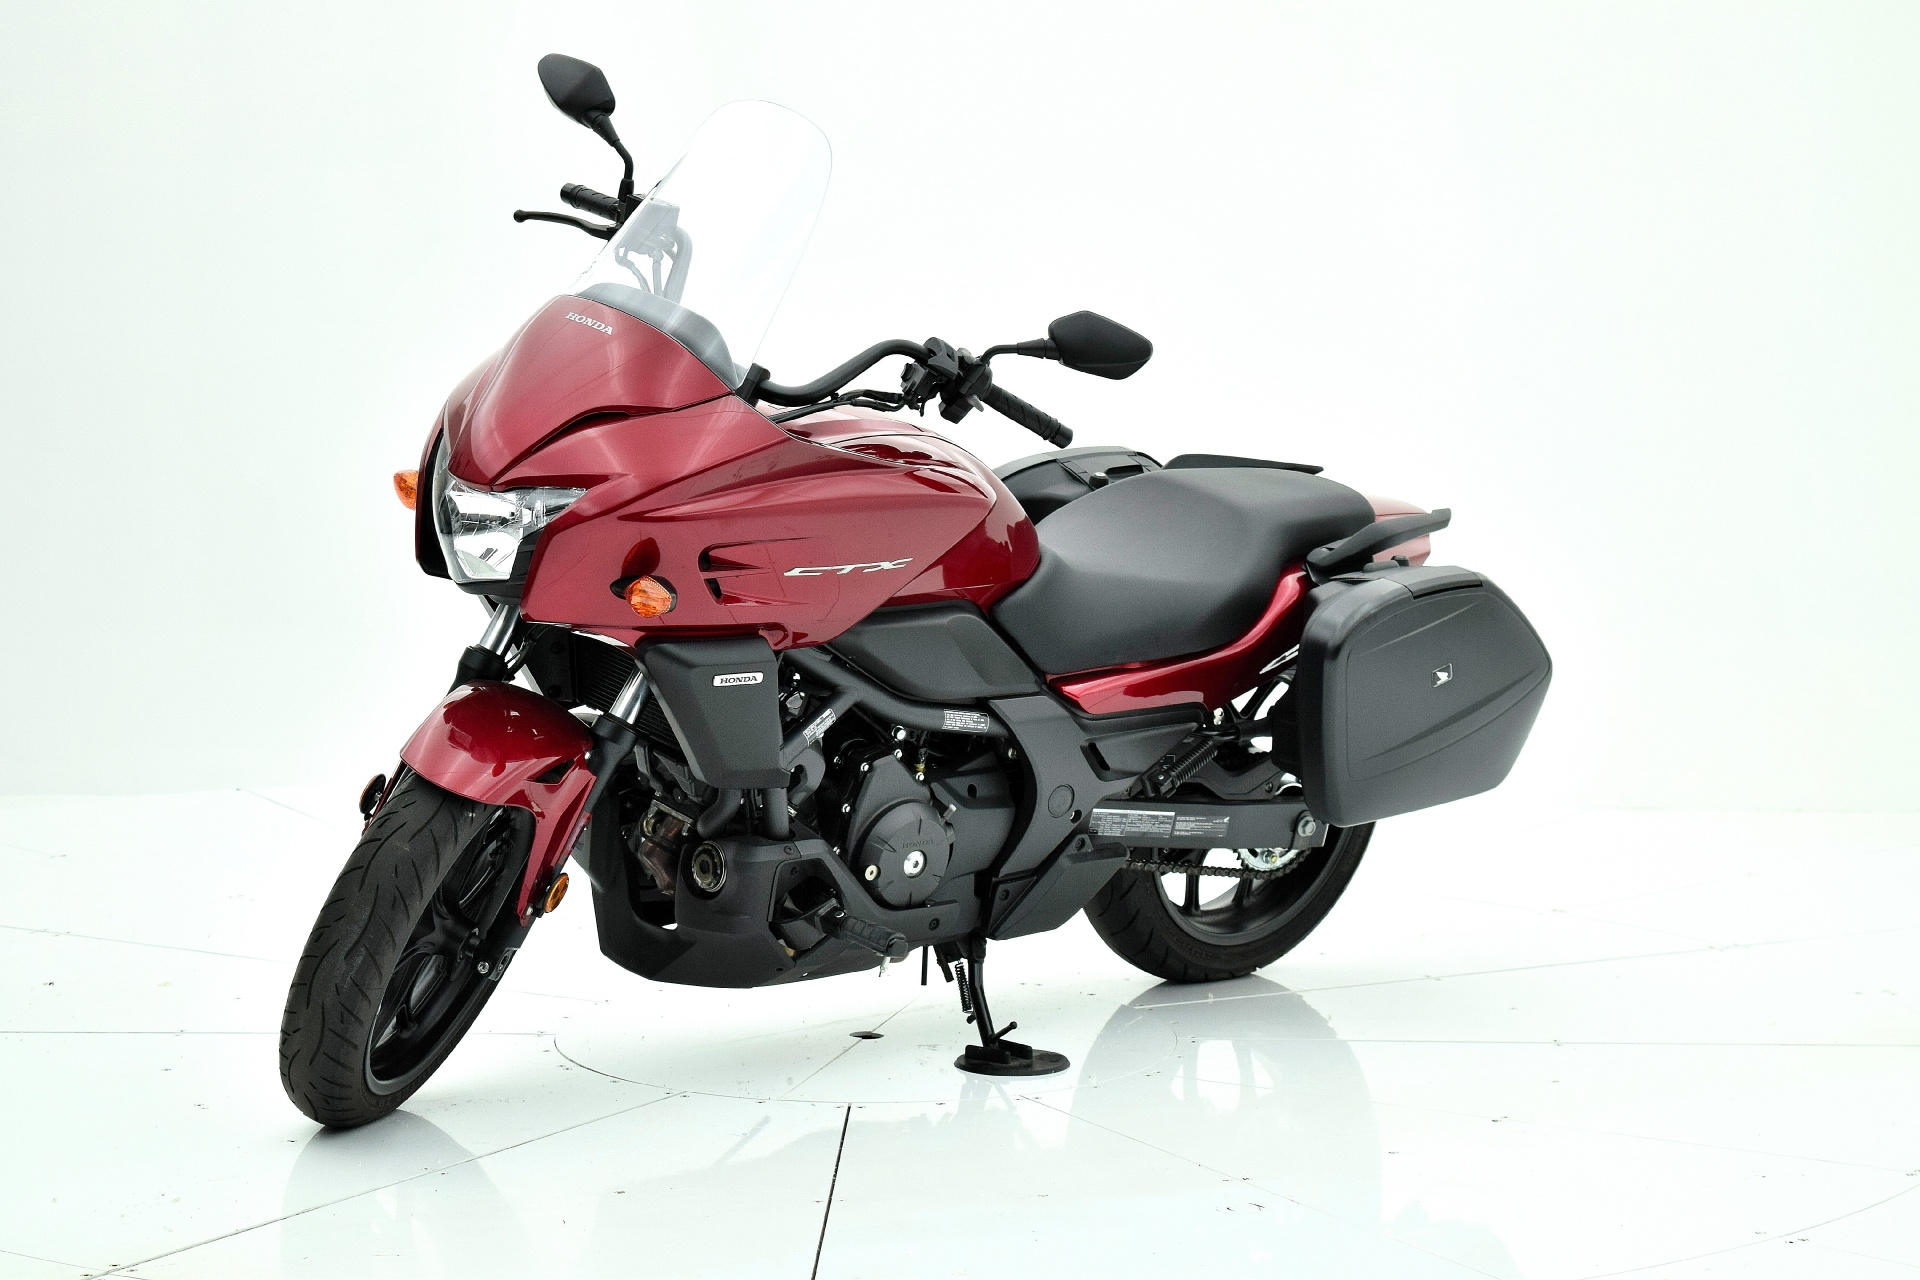 used 2014 honda ctx 700 motorcycle for sale 4 500 fc. Black Bedroom Furniture Sets. Home Design Ideas